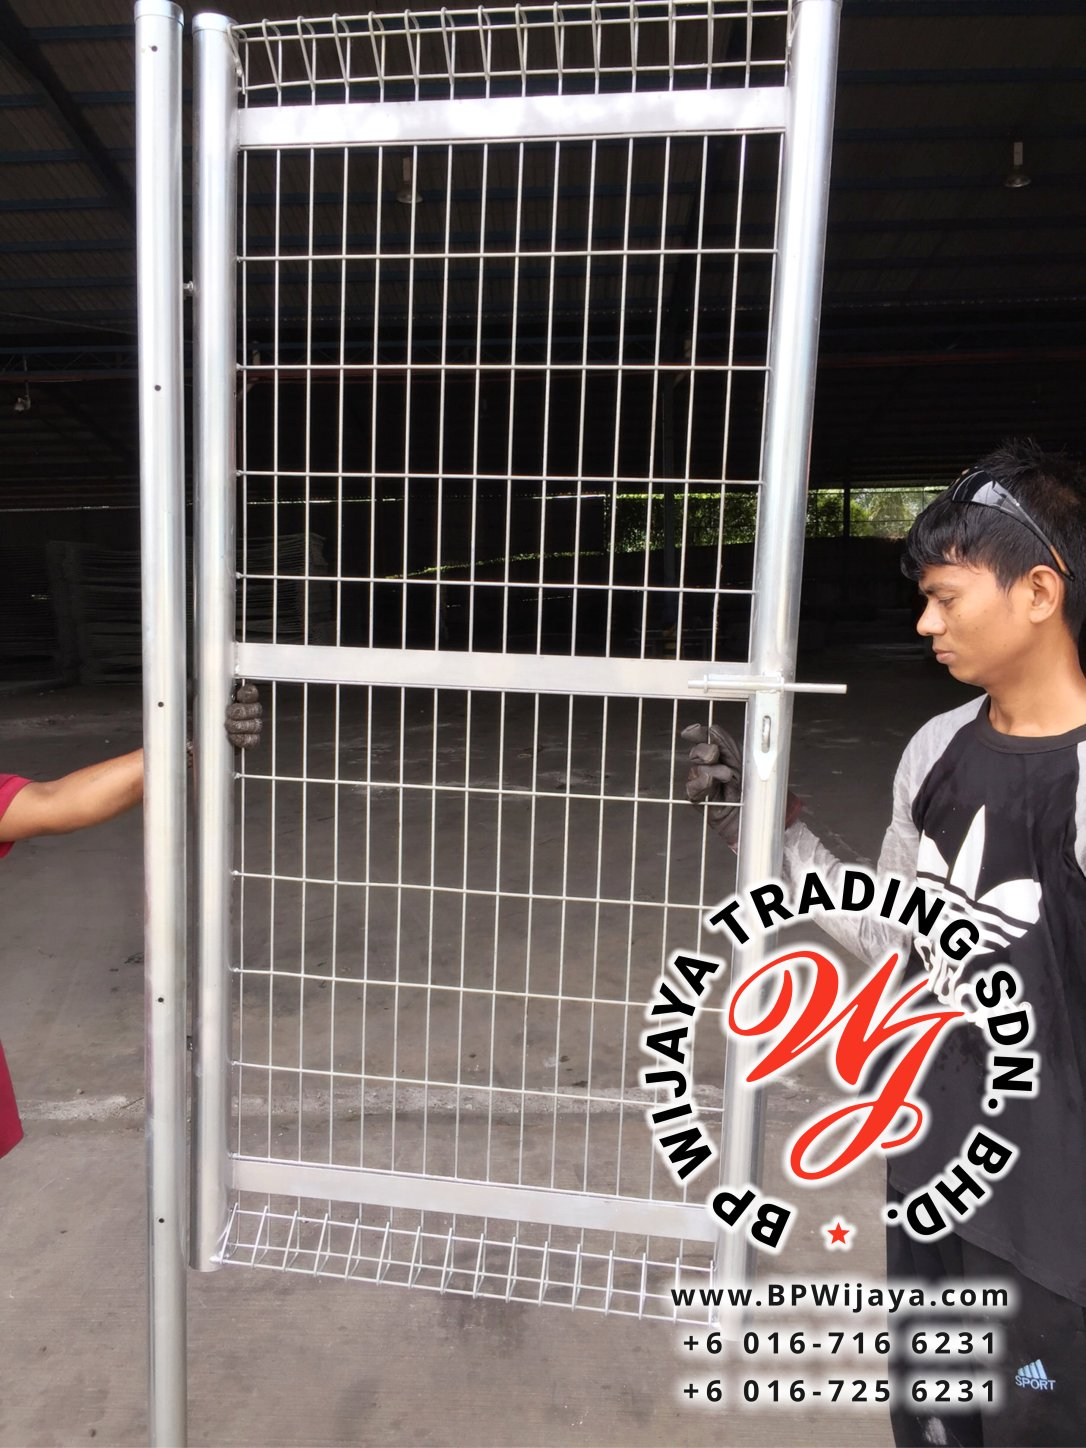 BP Wijaya Trading Sdn Bhd Malaysia manufacturer Distributor safety fences building materials Anti Climb Fence Hotdip Galvanized Fence Door and Fence Gate Mesh Wire Fence BRC from Johor Batu Pahat B03